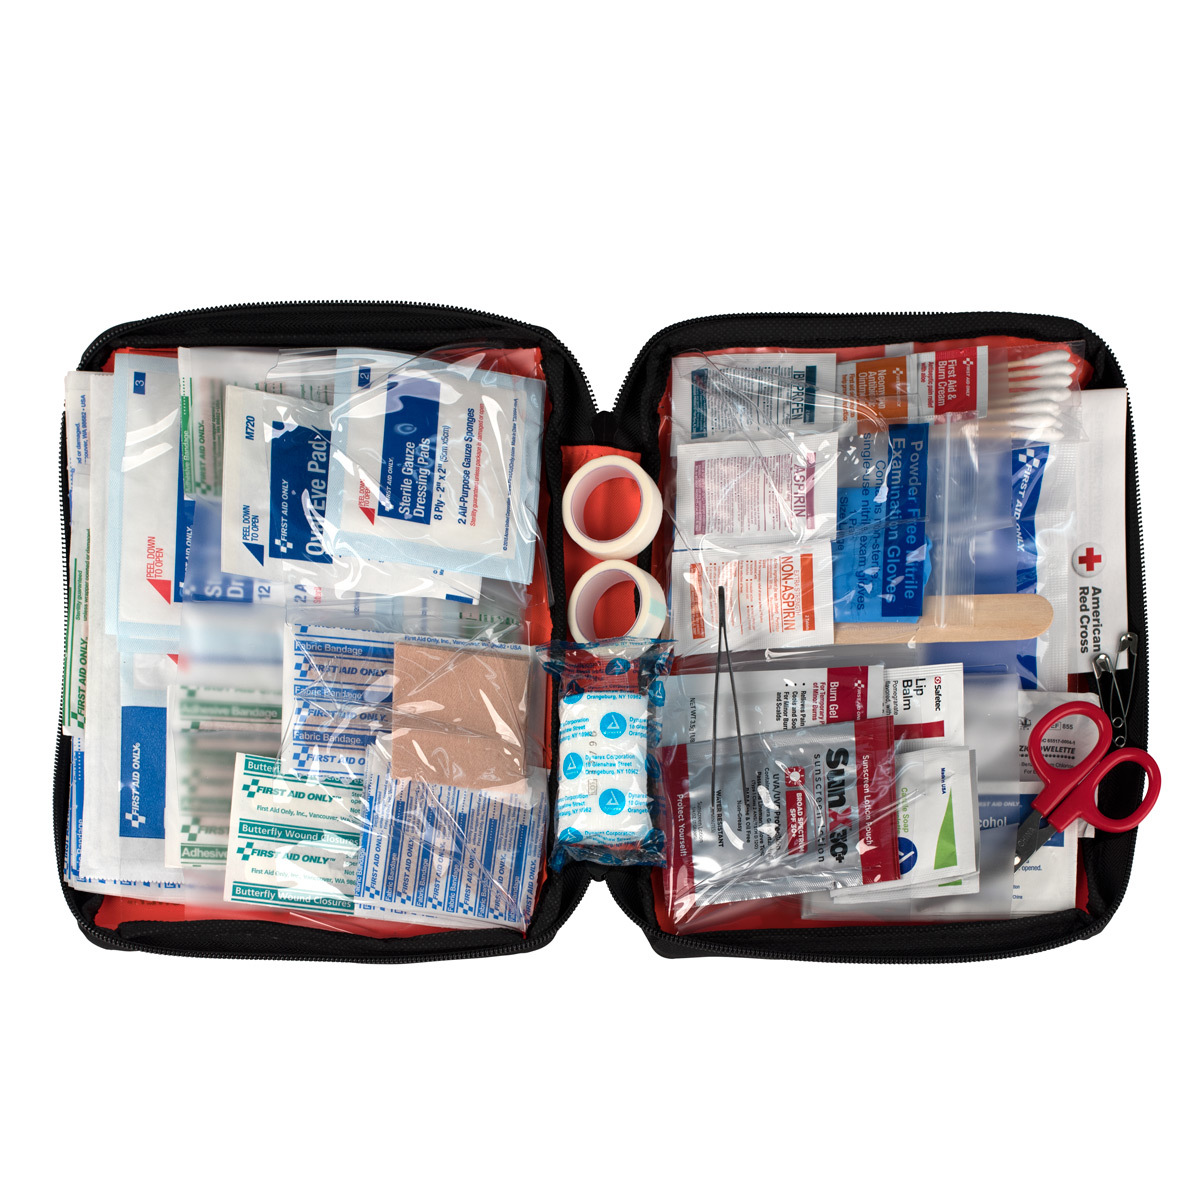 First Aid Only Outdoor First Aid Kit, Fabric Case, 204 Pc by ACME UNITED CORPORATION